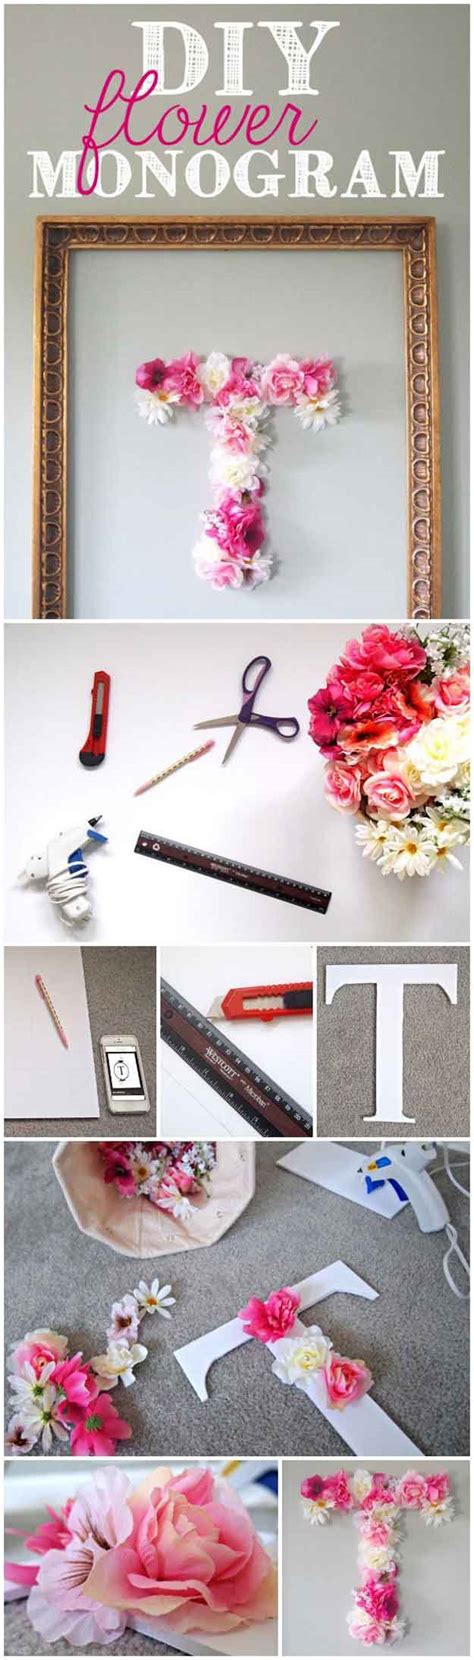 diy craft project diy projects for bedroom diy ready